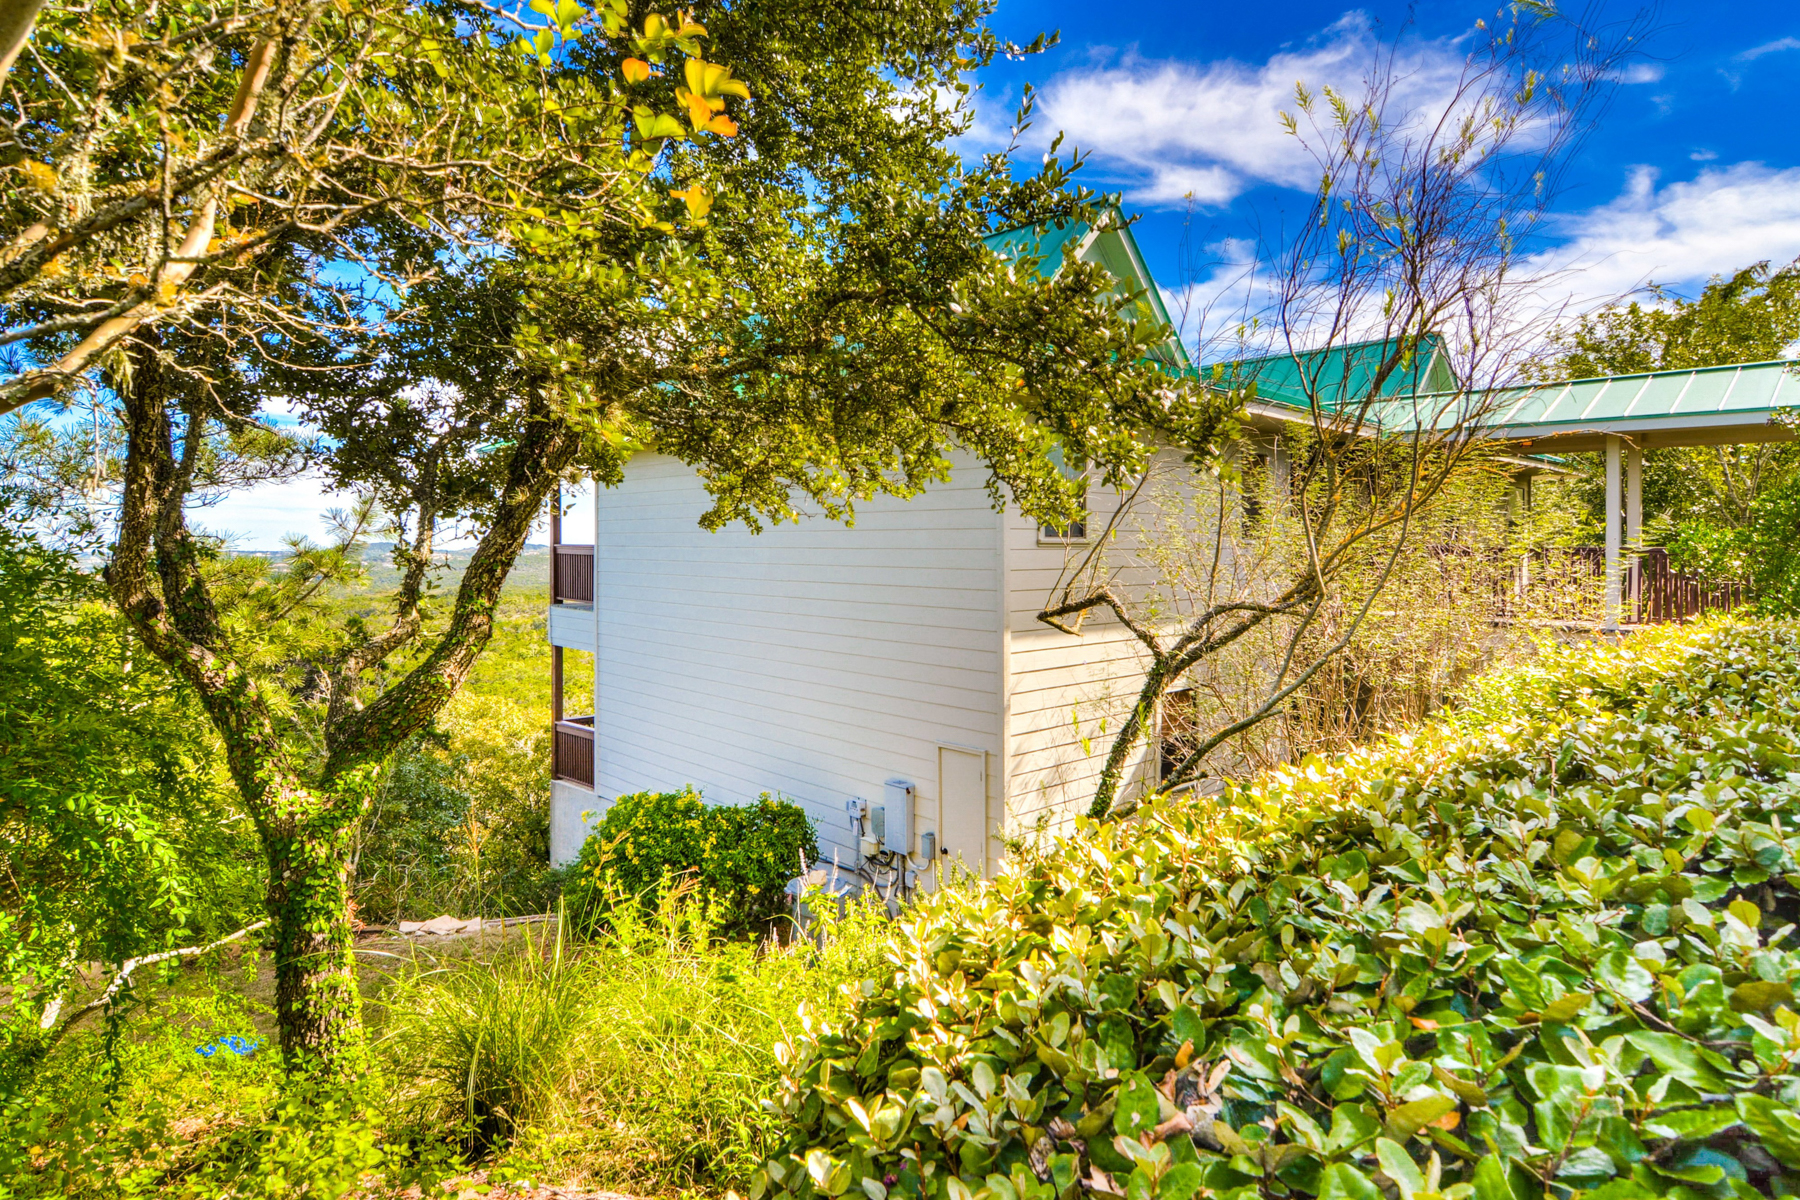 Additional photo for property listing at Custom Home in Boerne! 26714 Karsch Rd Boerne, Texas 78006 United States